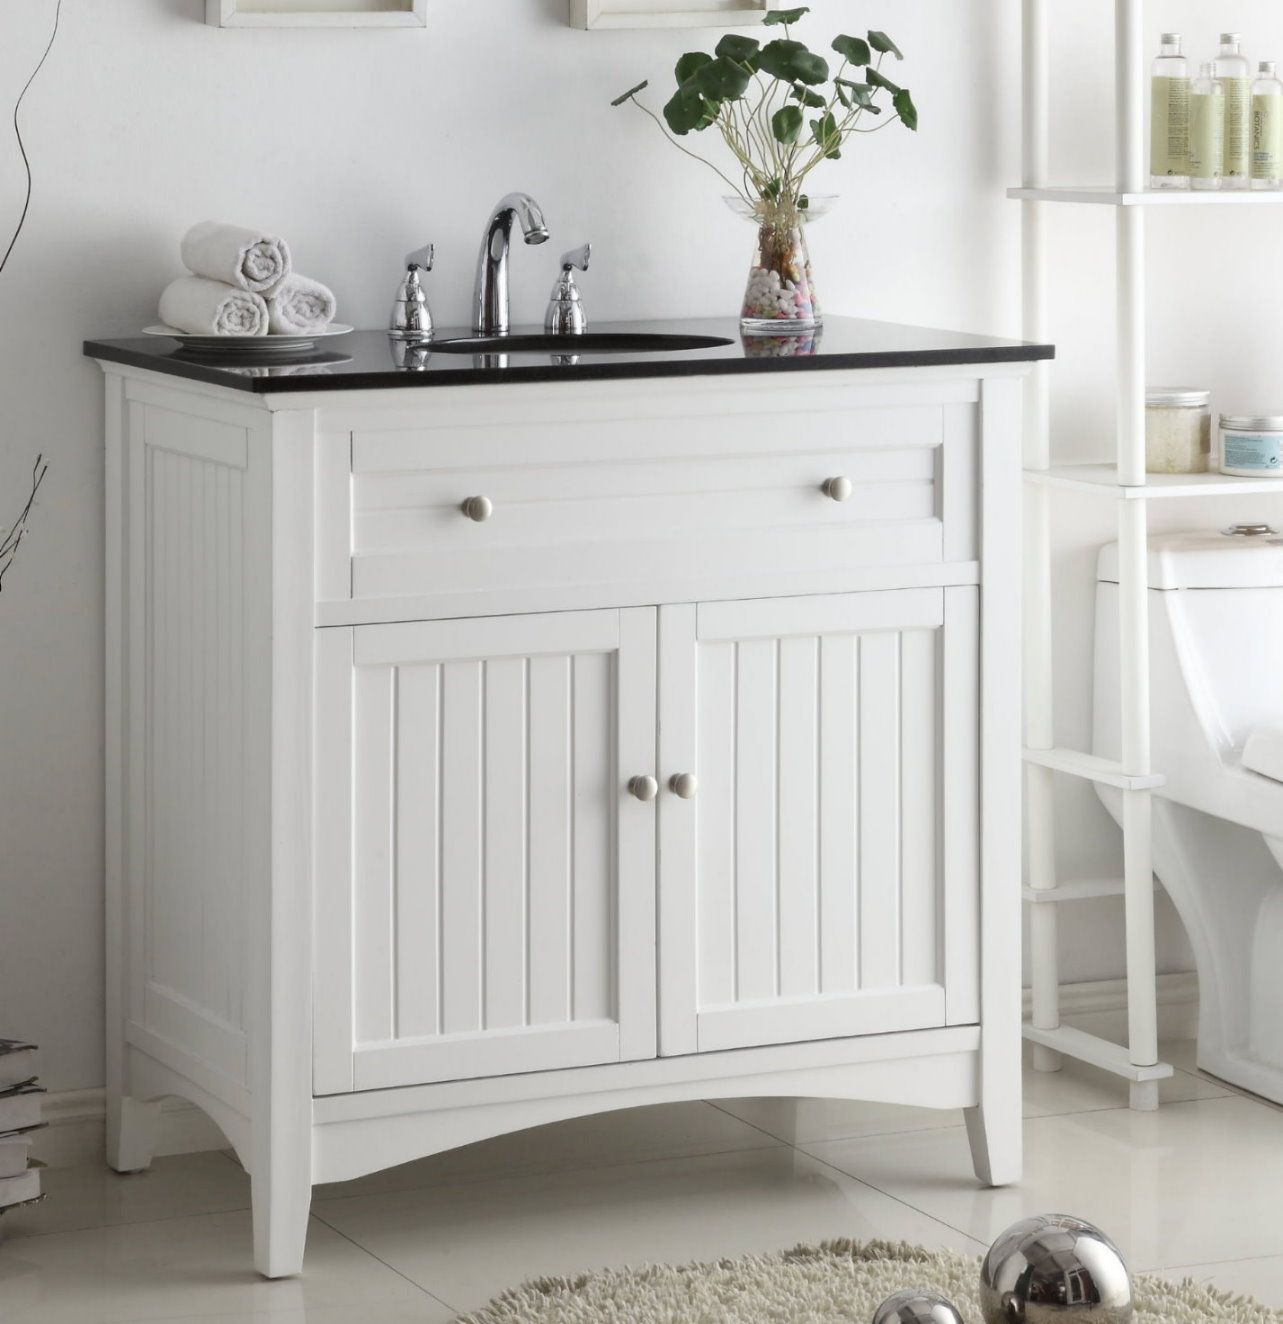 The Plantation Inspired Look Of This Cottage Style Sink Vanity Cabinet Is A Sophisticated Piece Clean Lining Bathroom Offers That Will